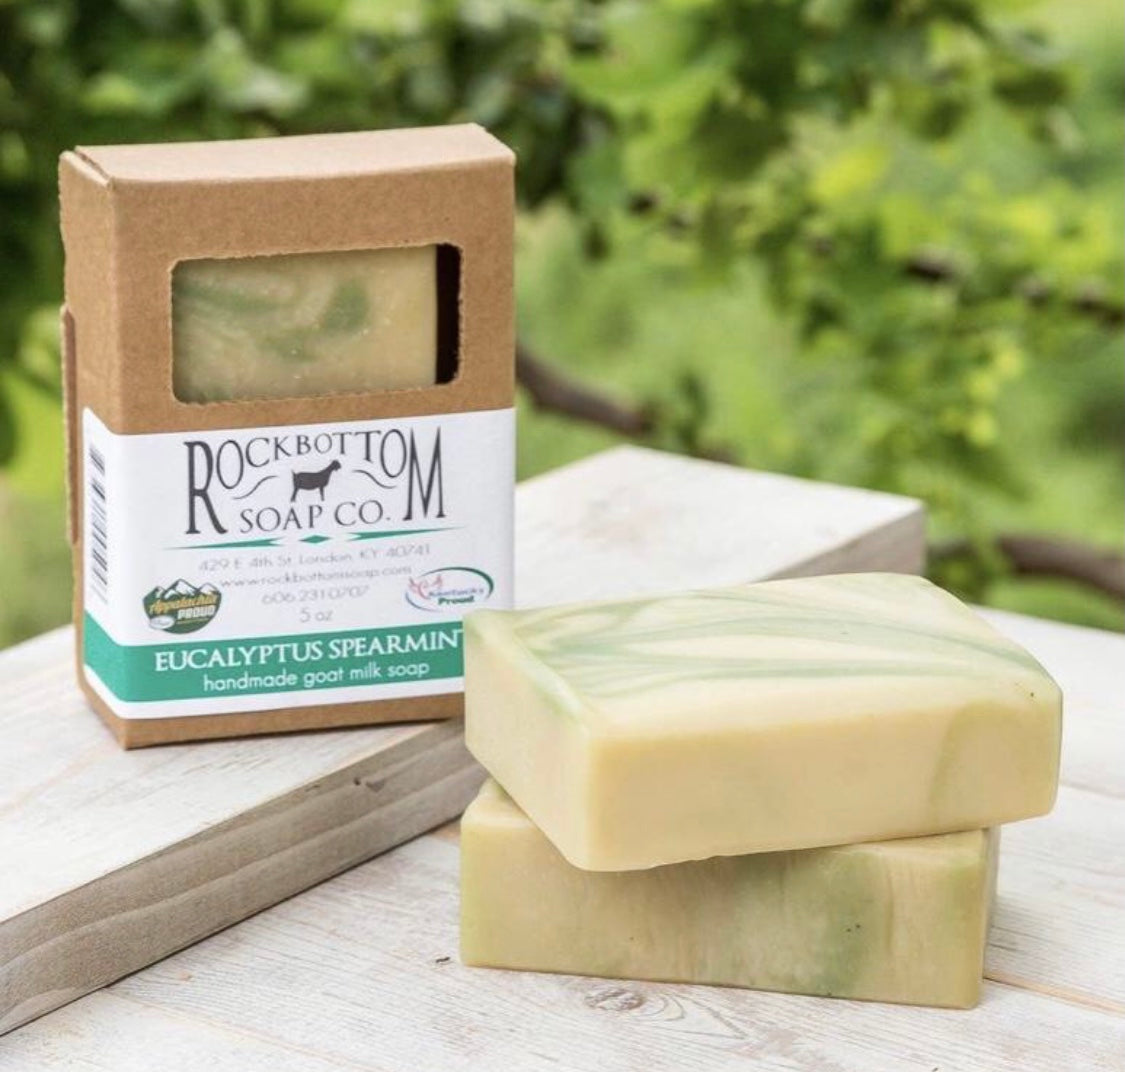 Eucalyptus Spearmint Goat Milk Soap